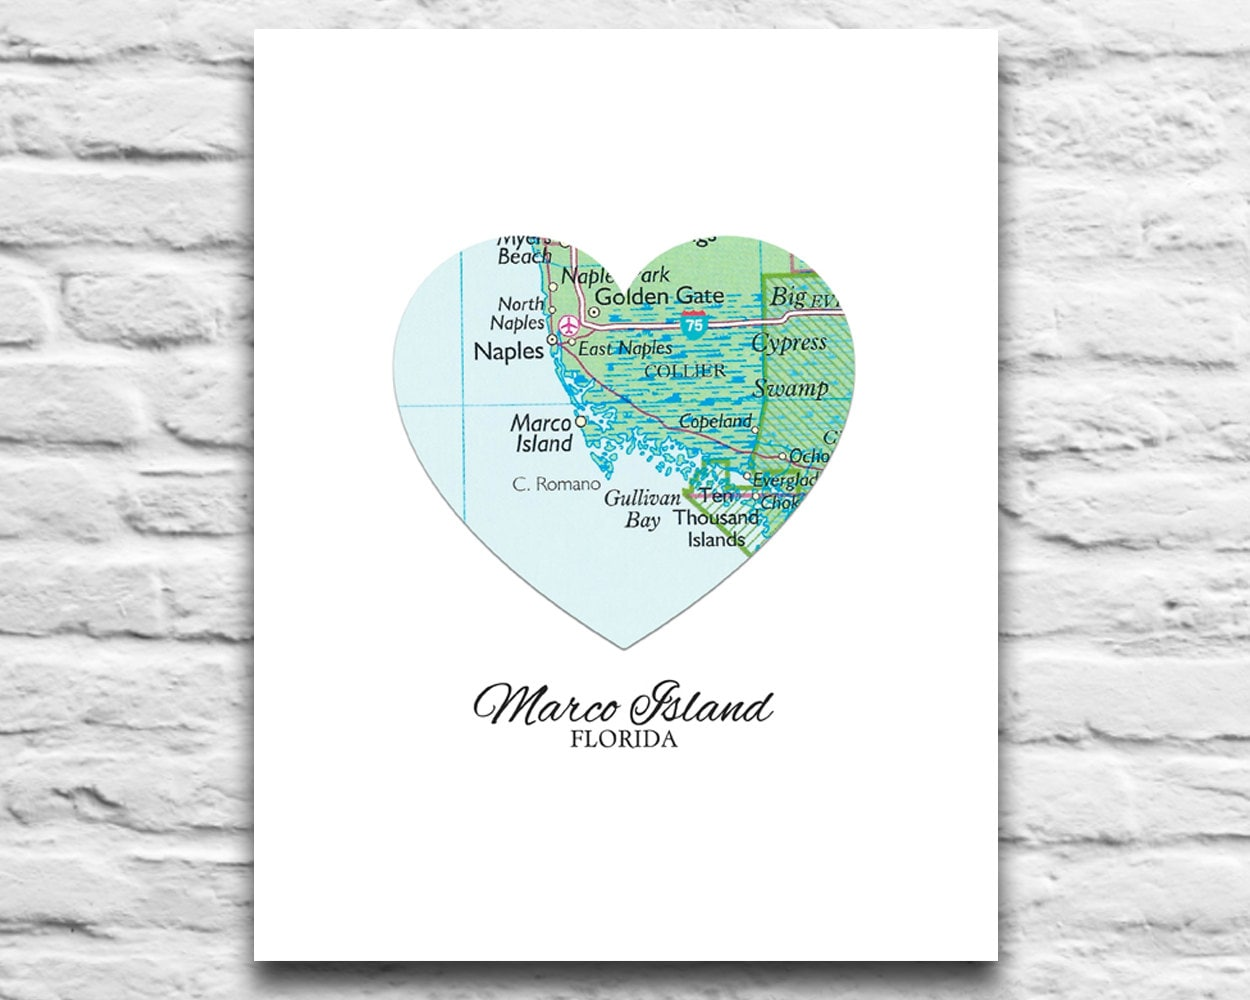 Marco Island Florida Vintage Heart Map DIGITAL DOWNLOAD for